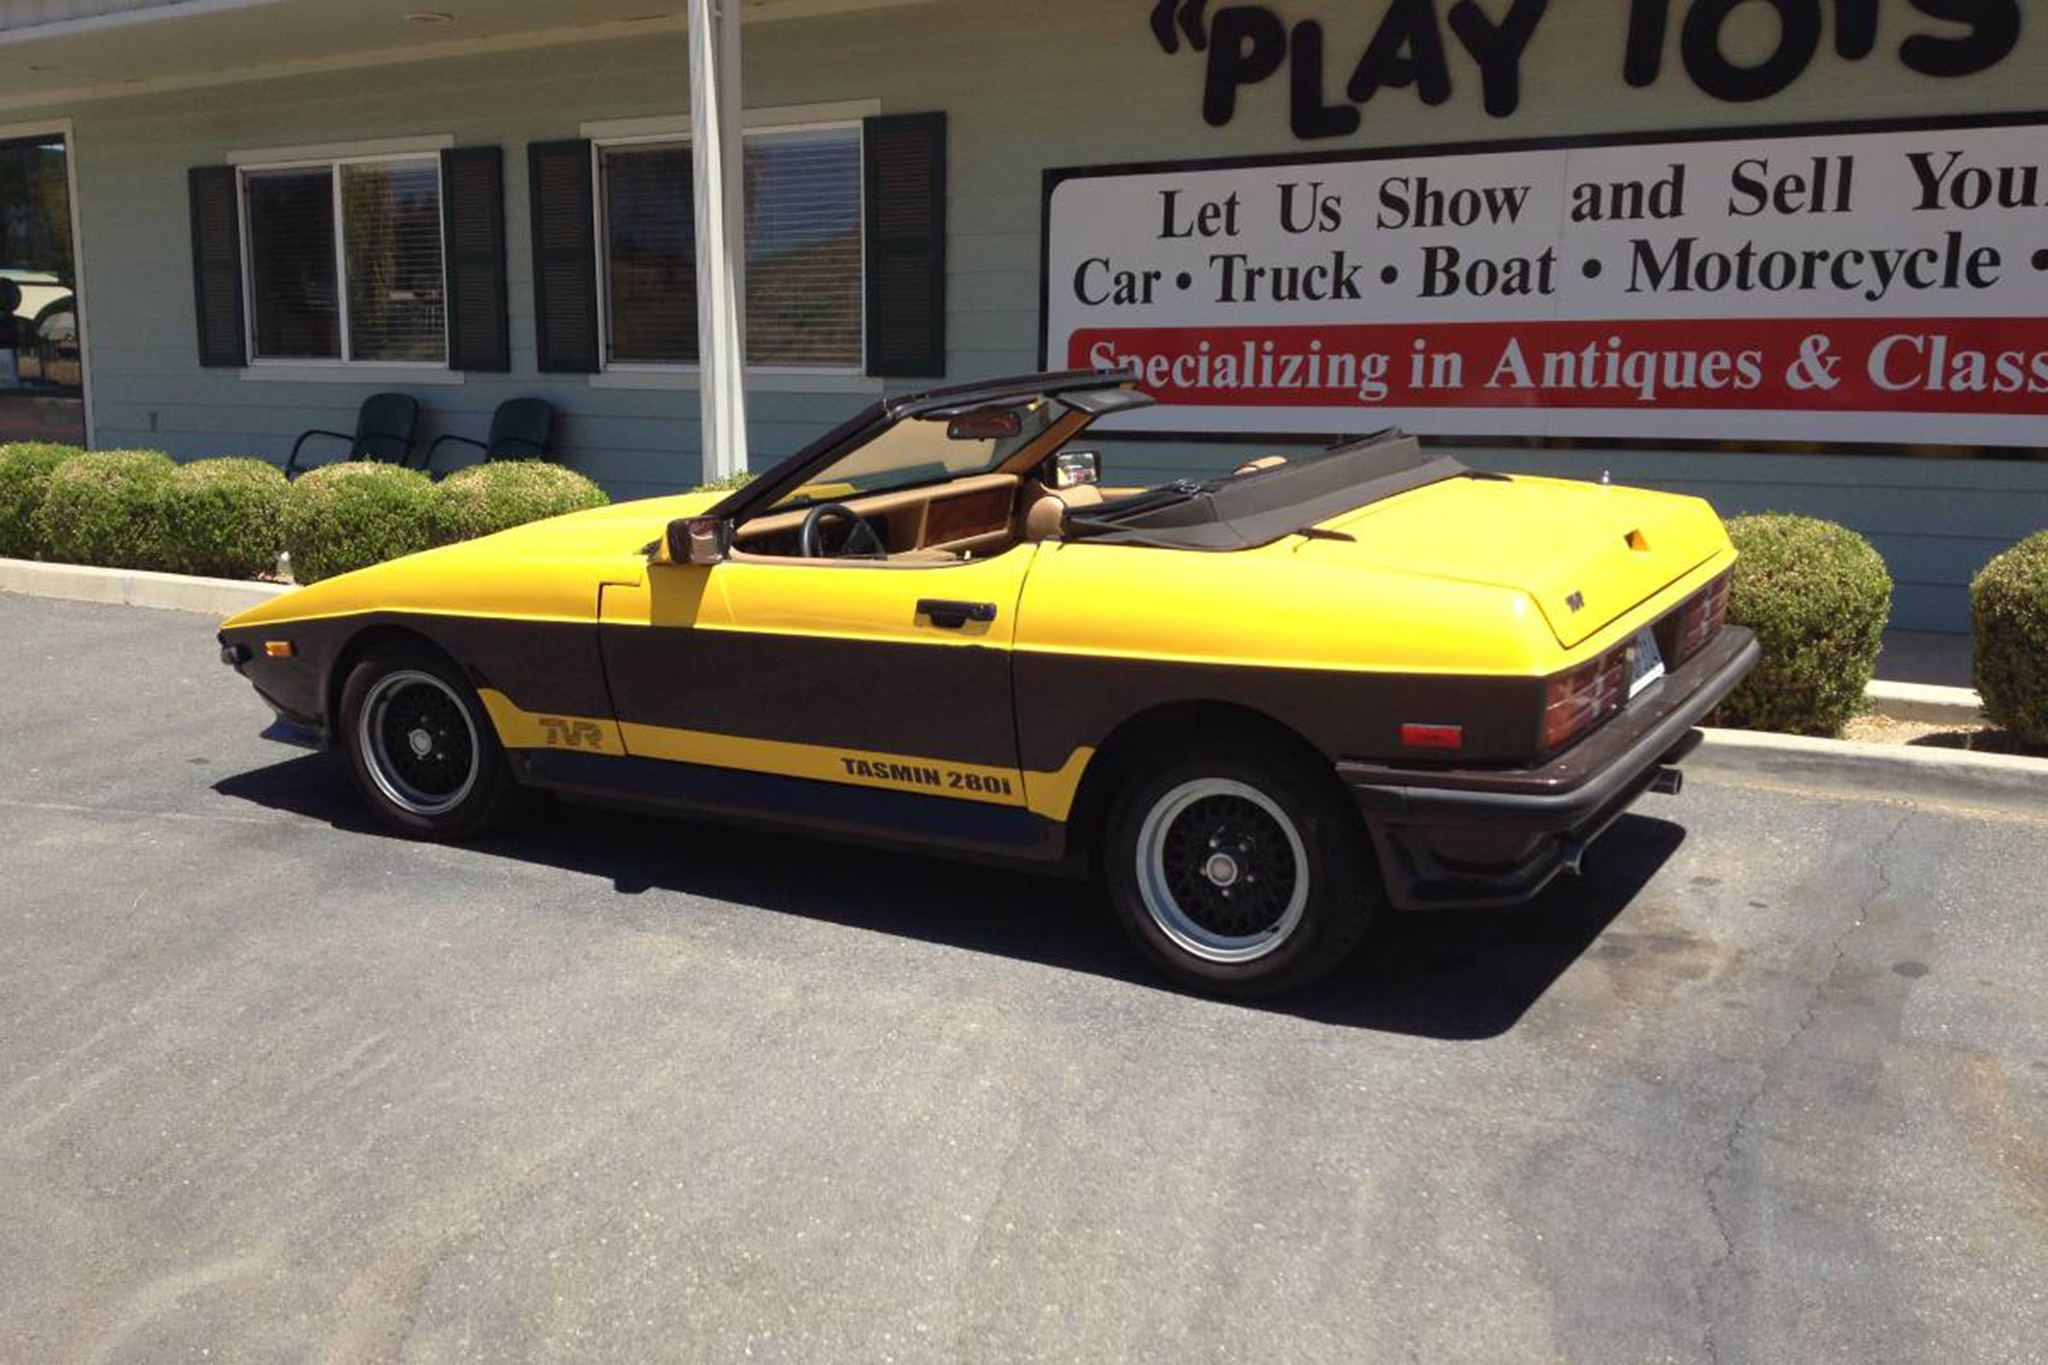 Just Listed: Two-Tone 1986 TVR Tasmin 280i Convertible | Automobile ...